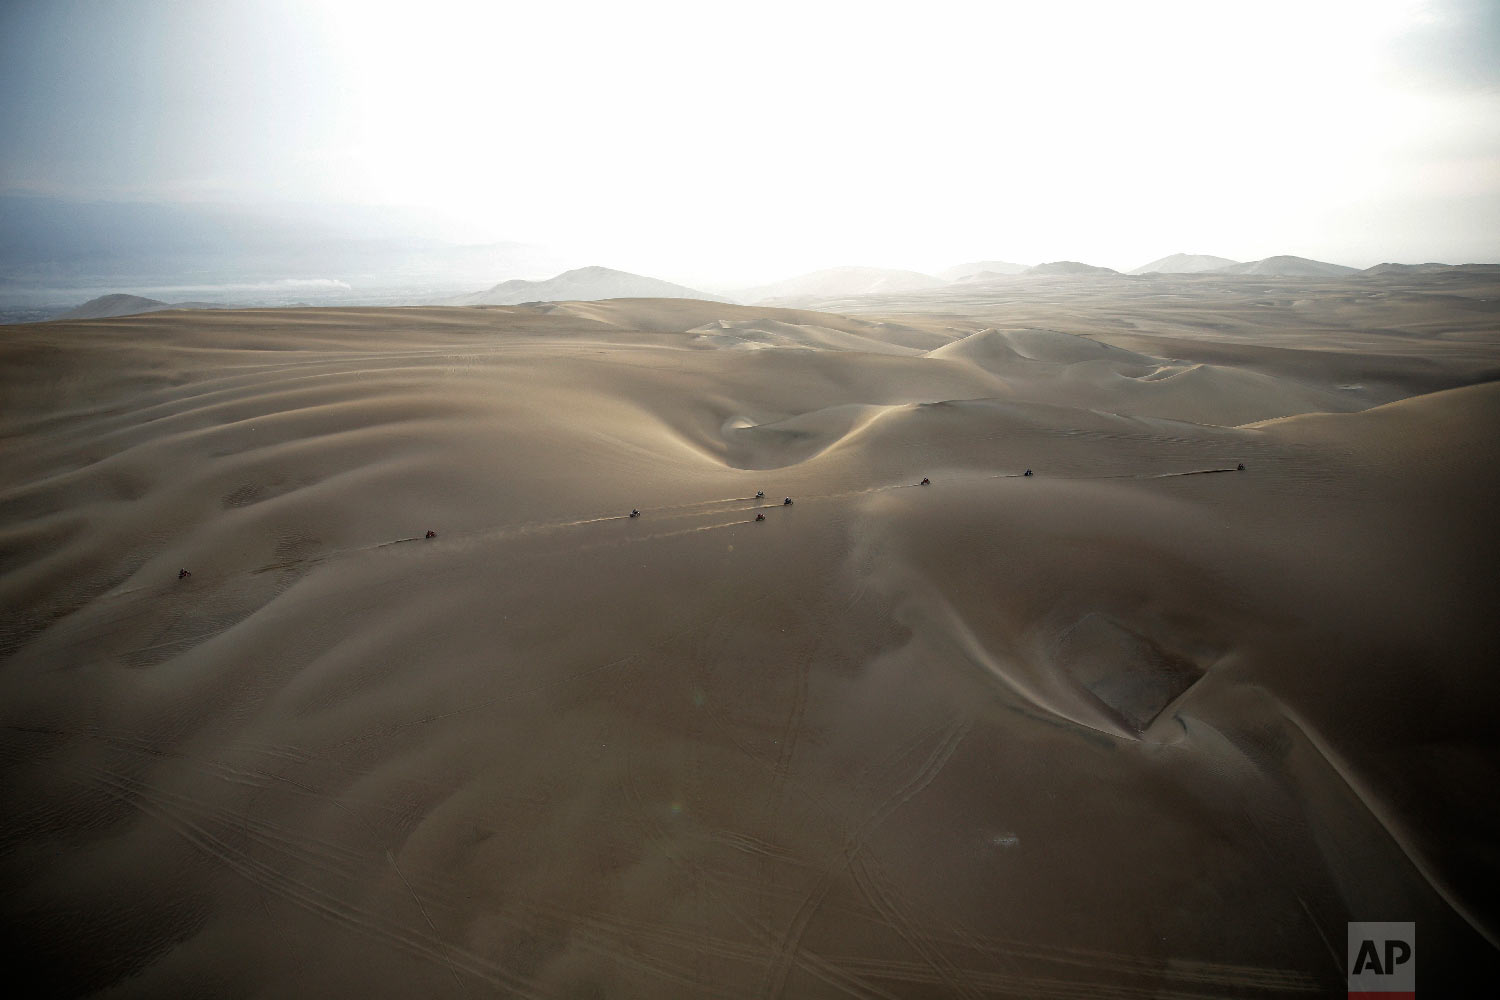 Competitors ride their motorbikes across the dunes during stage nine of the Dakar Rally in Pisco, Peru, Jan. 16, 2019. (AP Photo/Ricardo Mazalan)